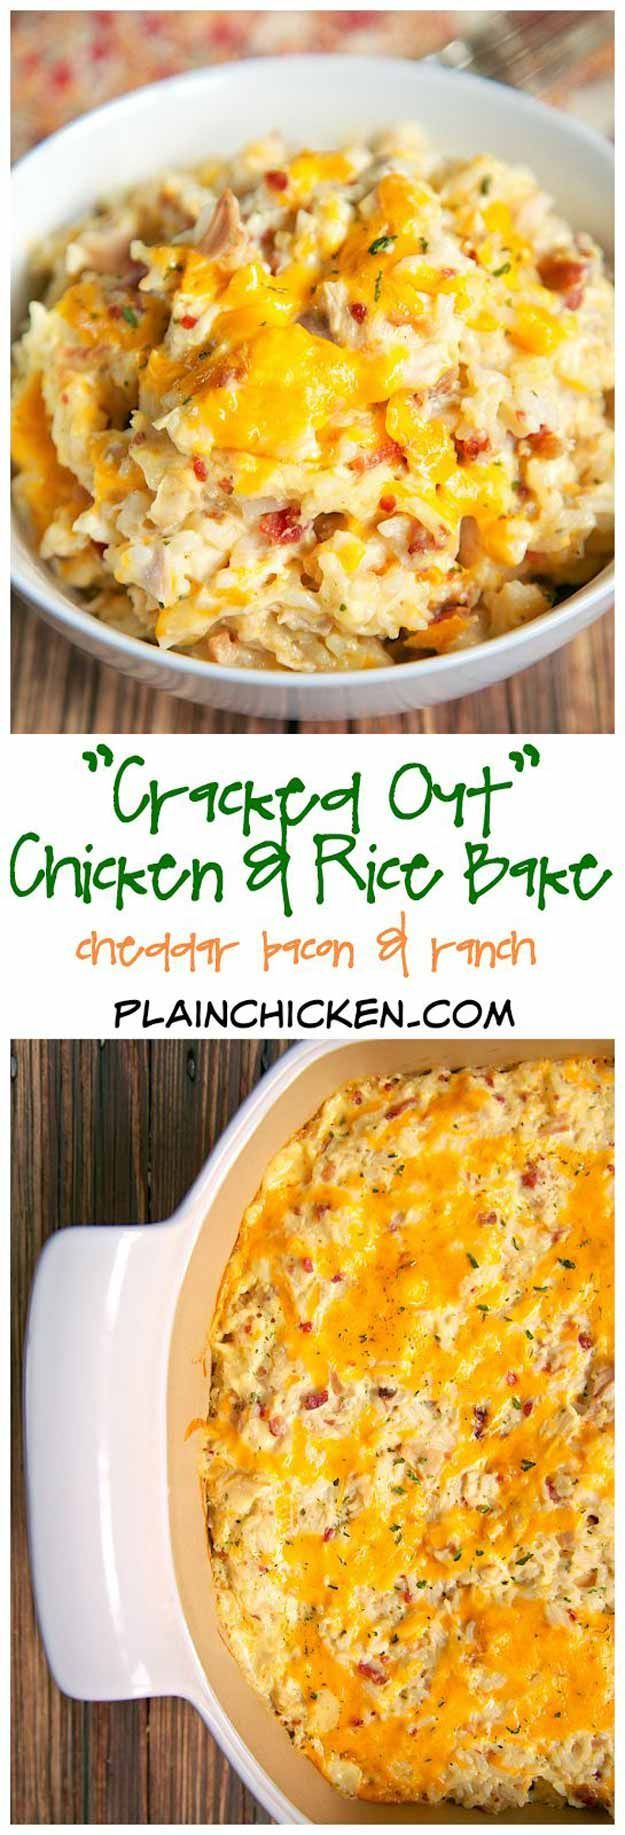 Chicken and Rice Bake | 12 Savory Chicken & Rice Recipes